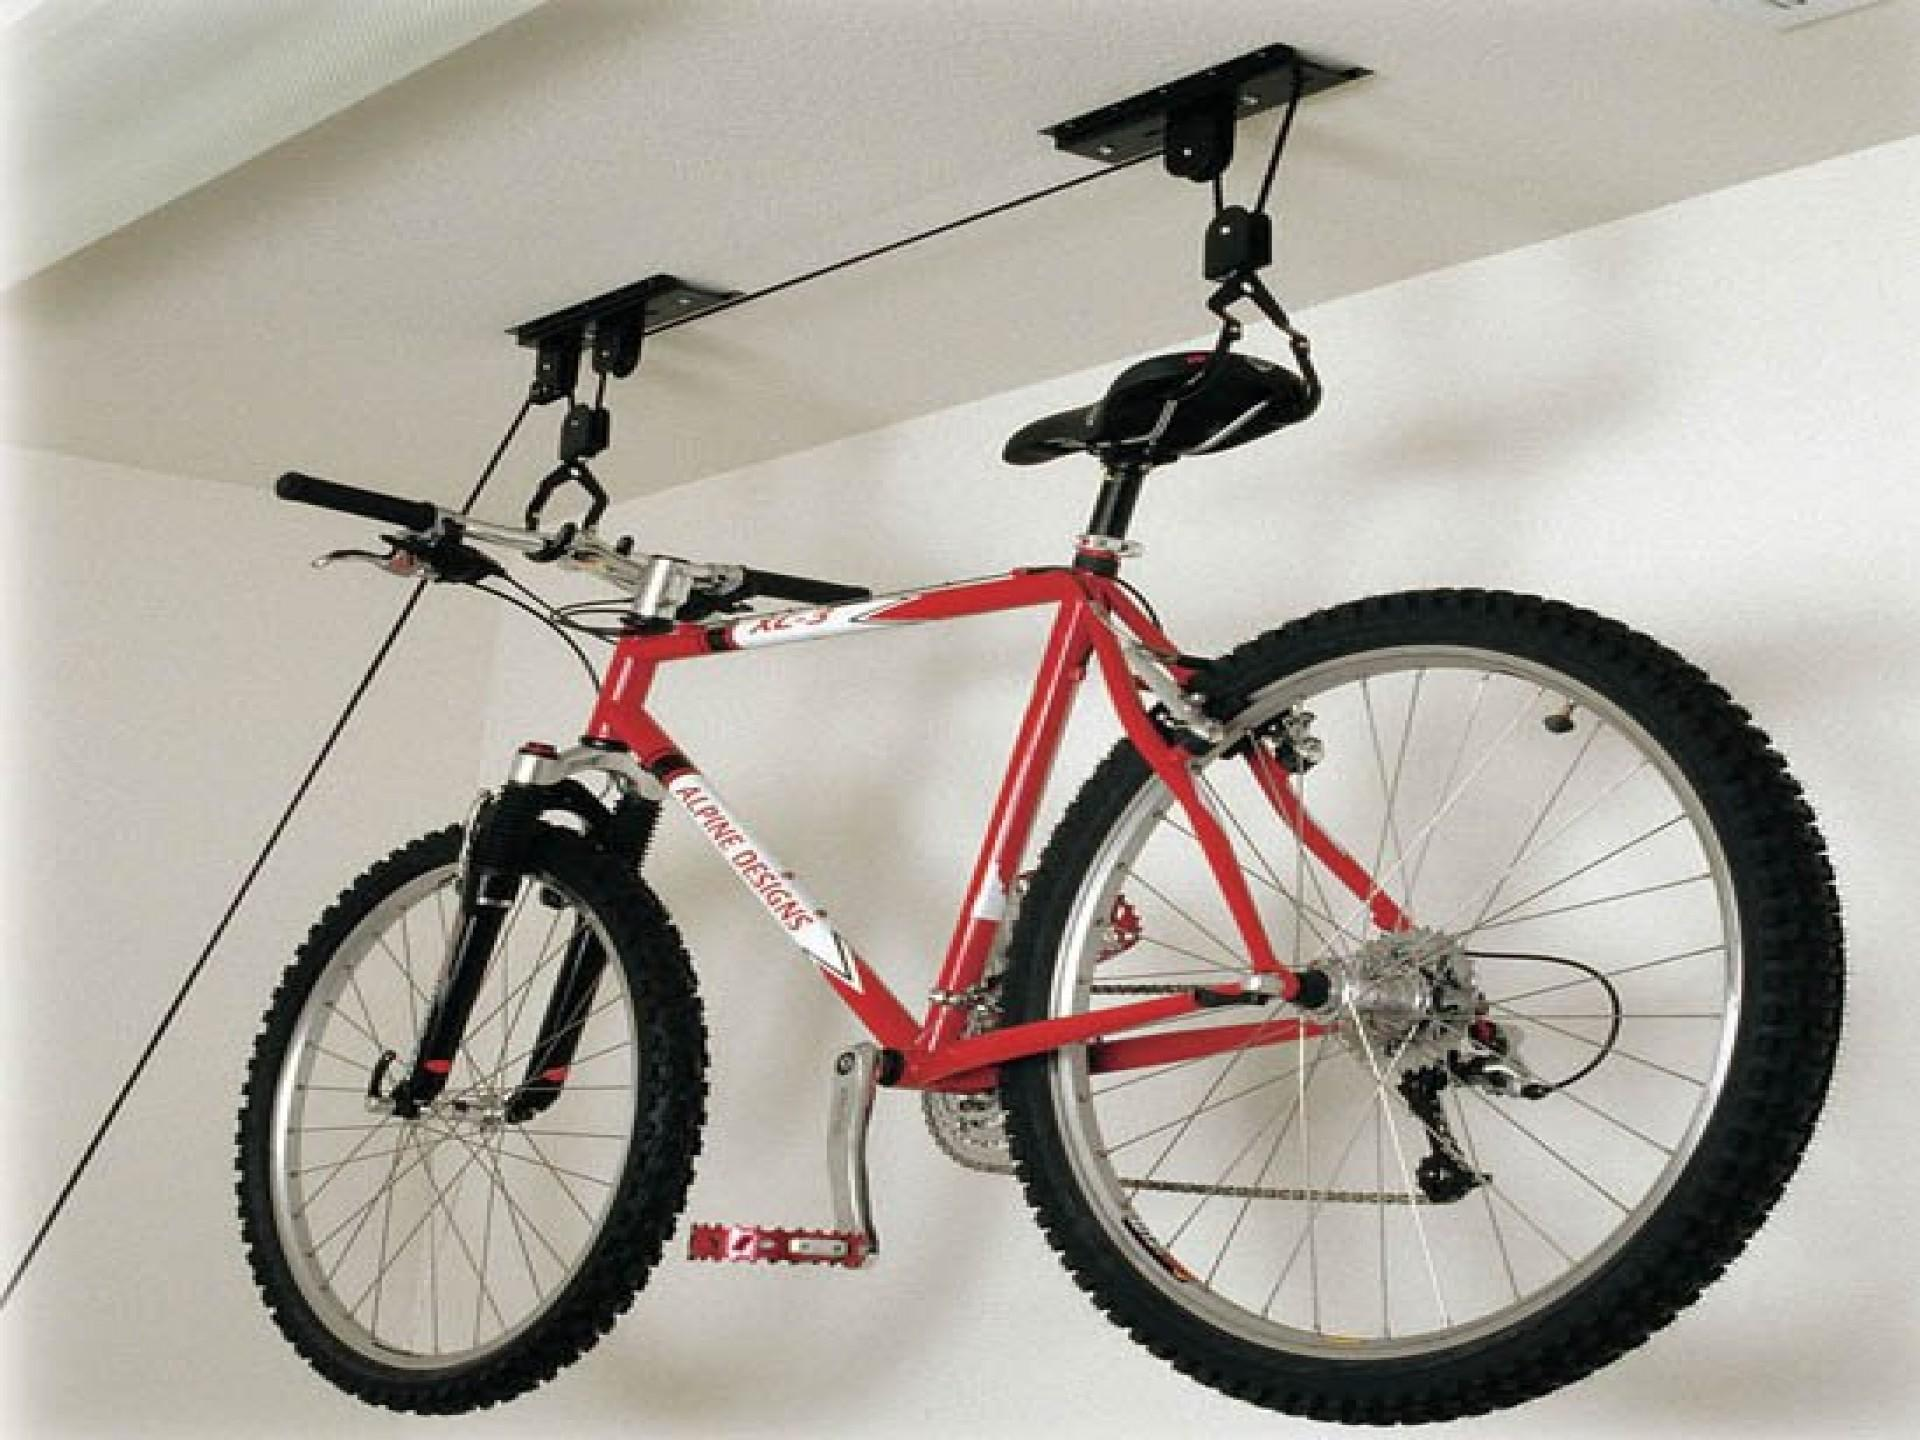 Garage Shed Bycycle Storage Ideas Any